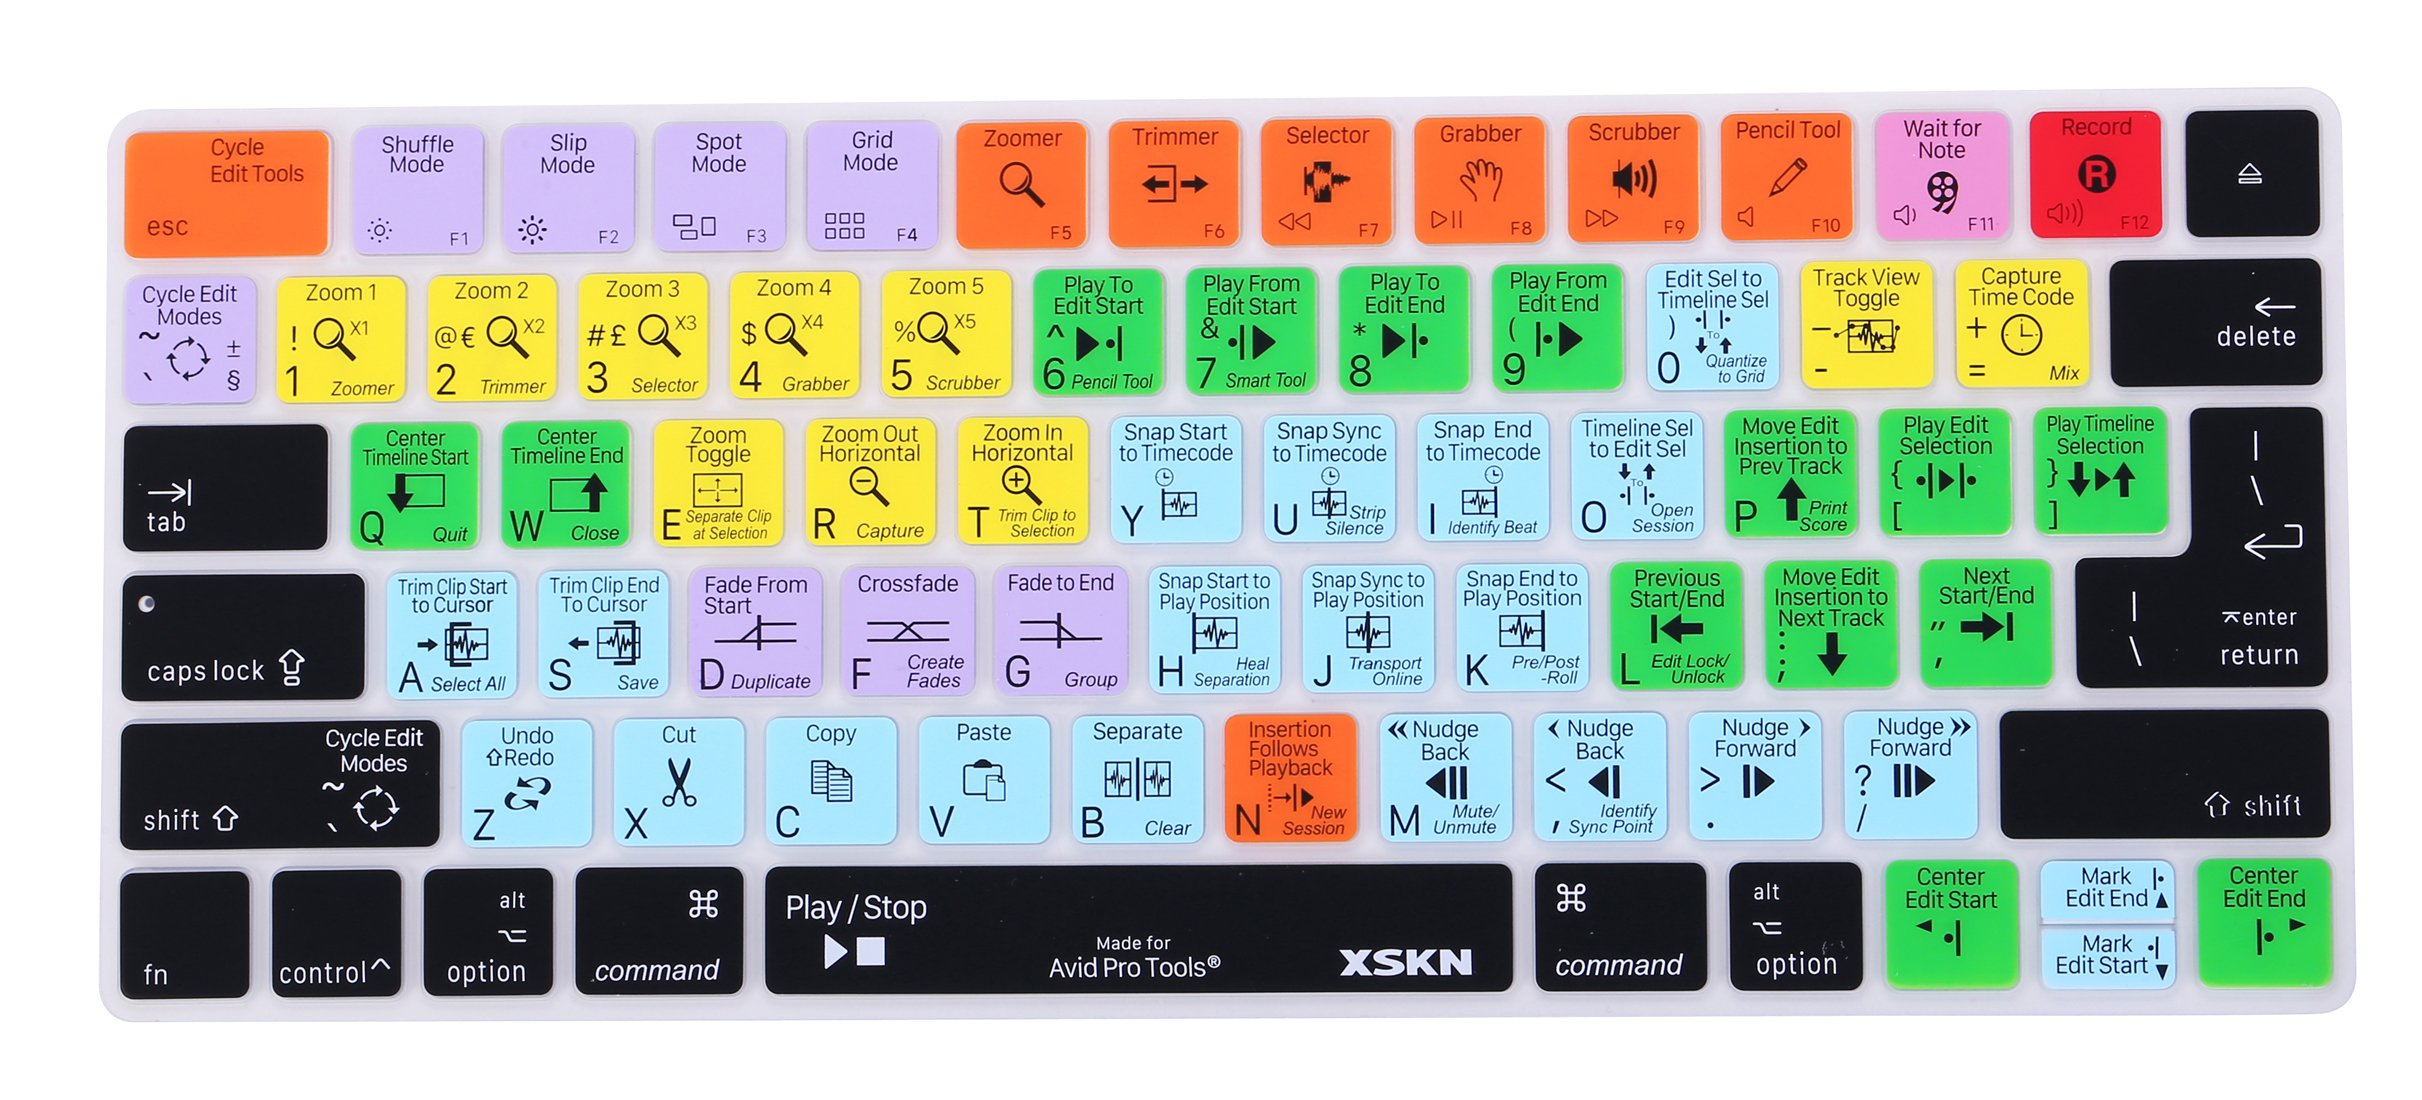 XSKN Magic Keyboard Avid Pro Tools Shortcut Keyboard Cover, Durable Avid Hotkeys Silicone Keyboard Skin for Apple Magic Keyboard MLA22LL/A by XSKN (Image #1)